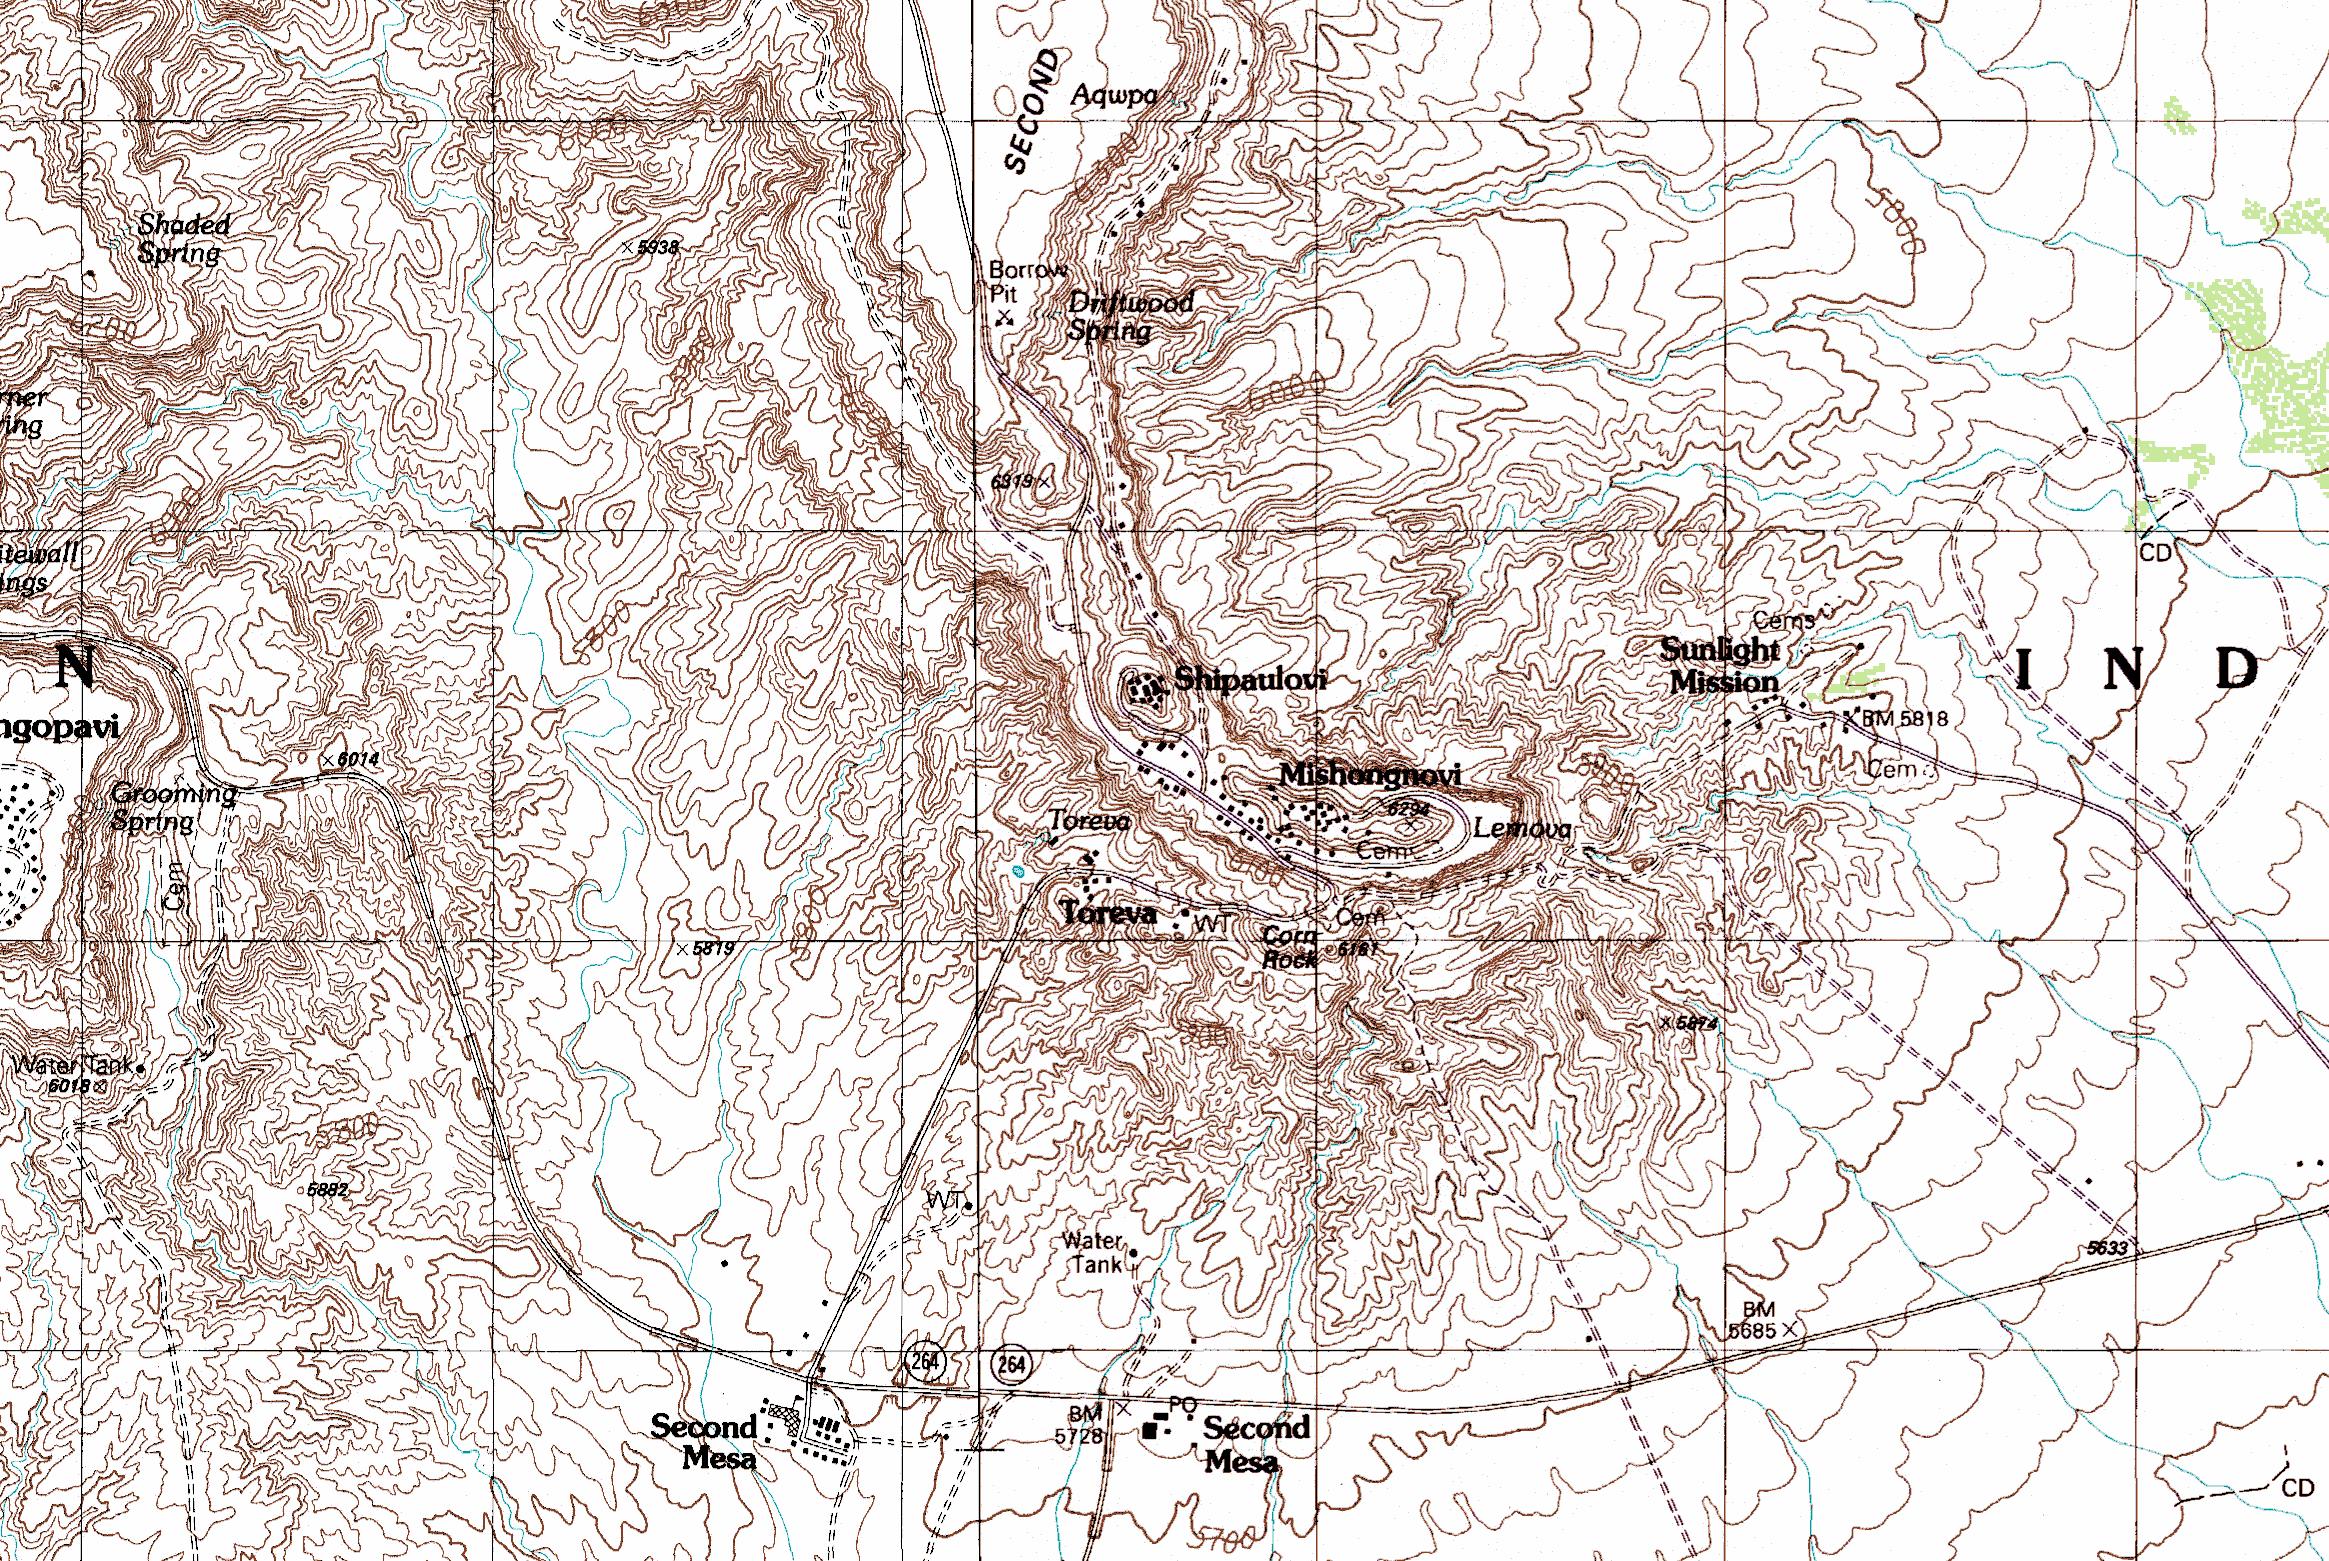 Toreva AZ Landsliding - Arizona topographic map